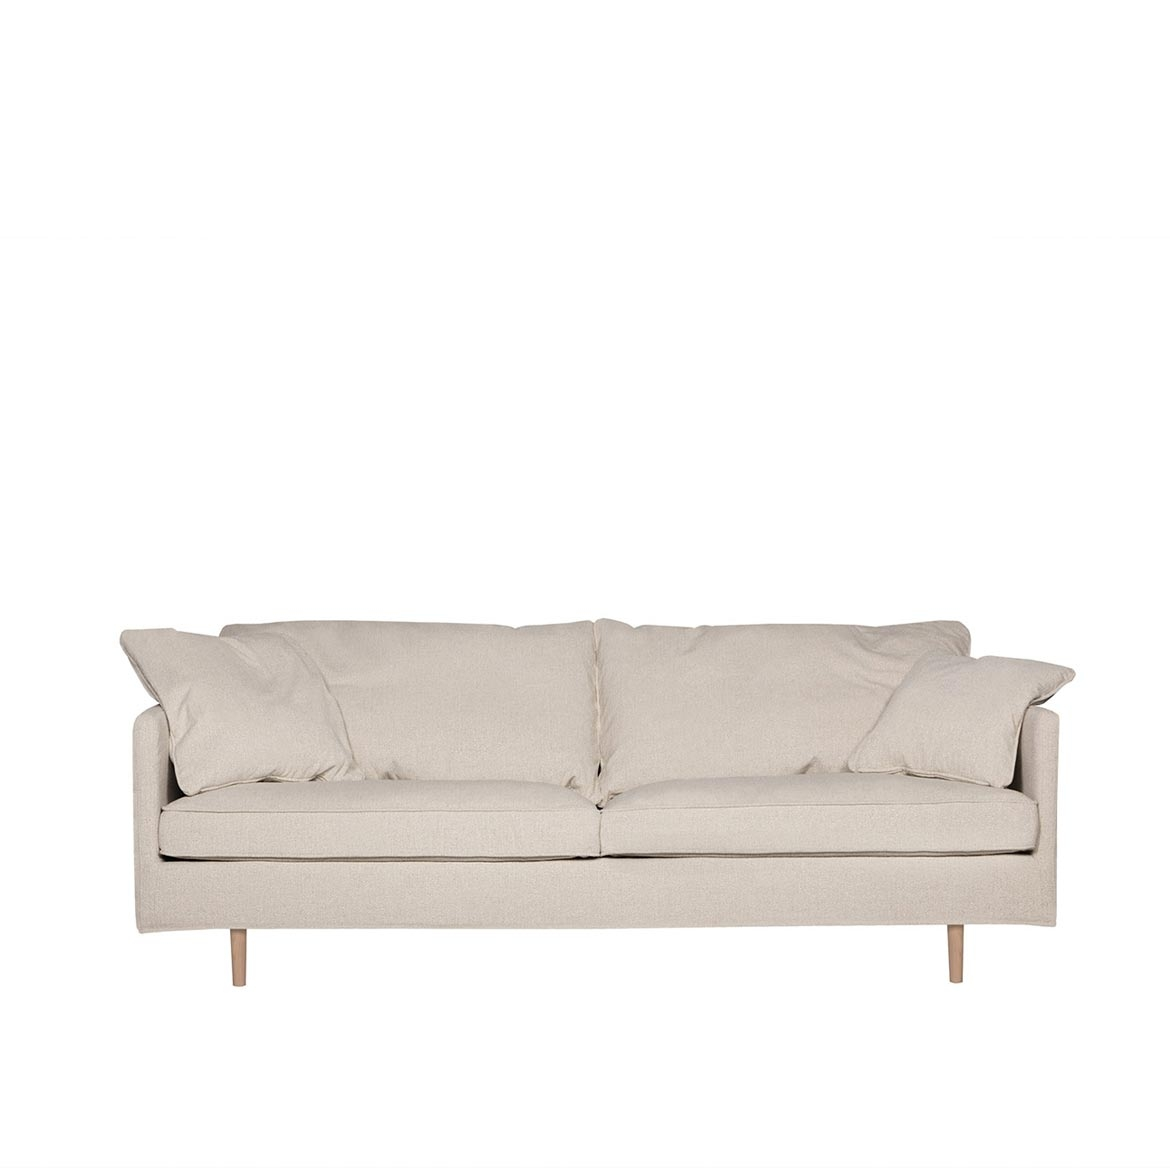 Jules 2 seater sofa